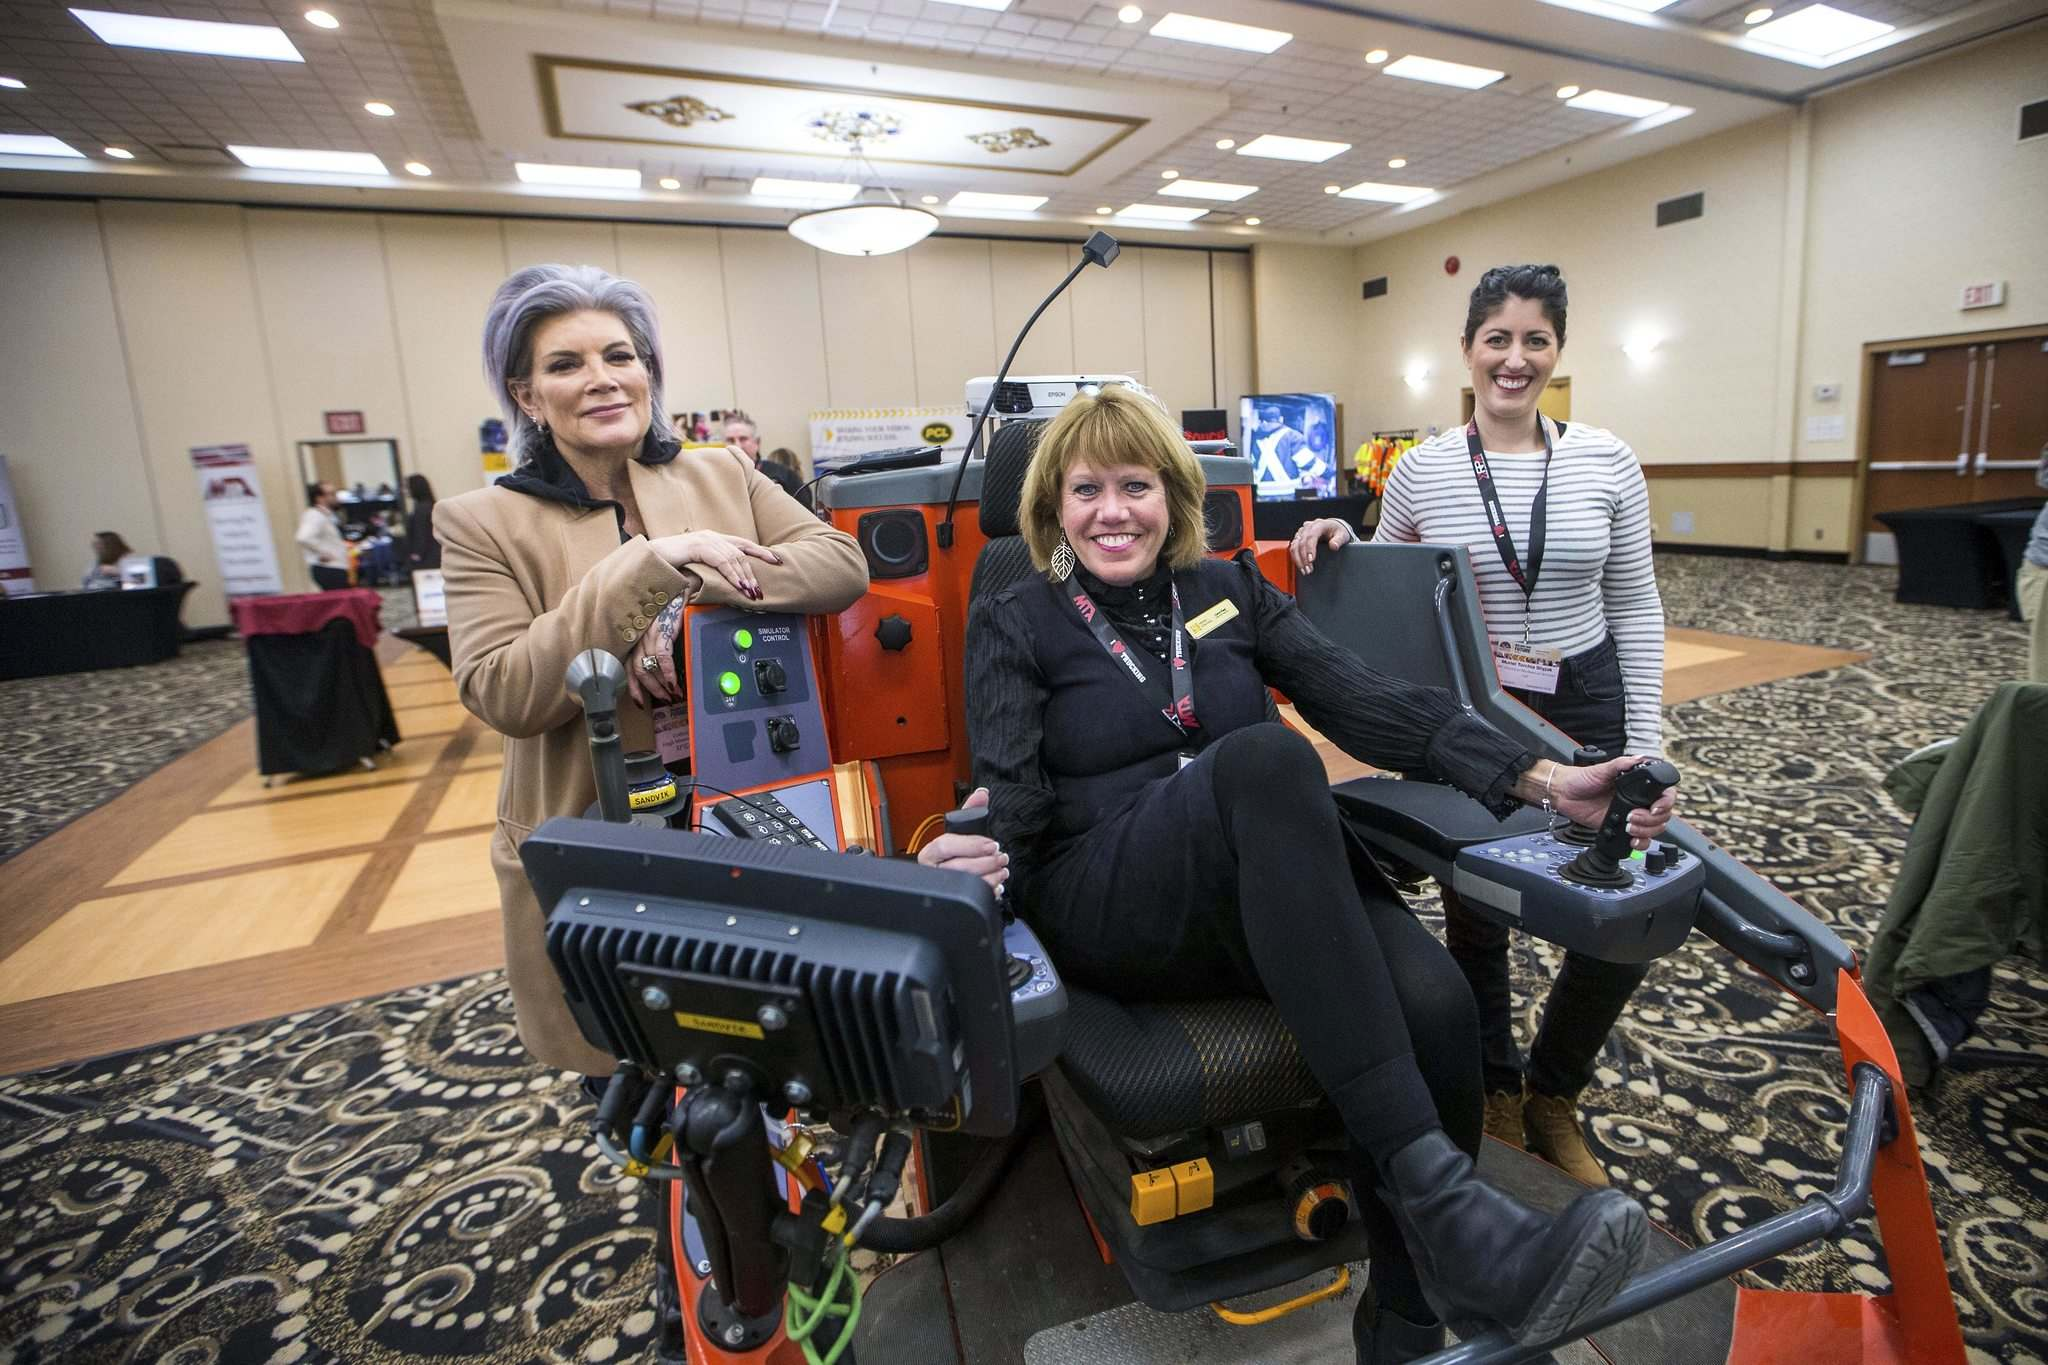 MIKAELA MACKENZIE / WINNIPEG FREE PRESS</p><p>Muriel Torchia Shyjak, owner of MG Electrical/Mechanical Services (left), Carol Paul, head of the construction sector council, and Colleen Munro, head of Munro Construction with a blast hole drilling simulator at the Women in Trades conference at Victoria Inn Hotel & Convention Centre in Winnipeg on Tuesday.</p>